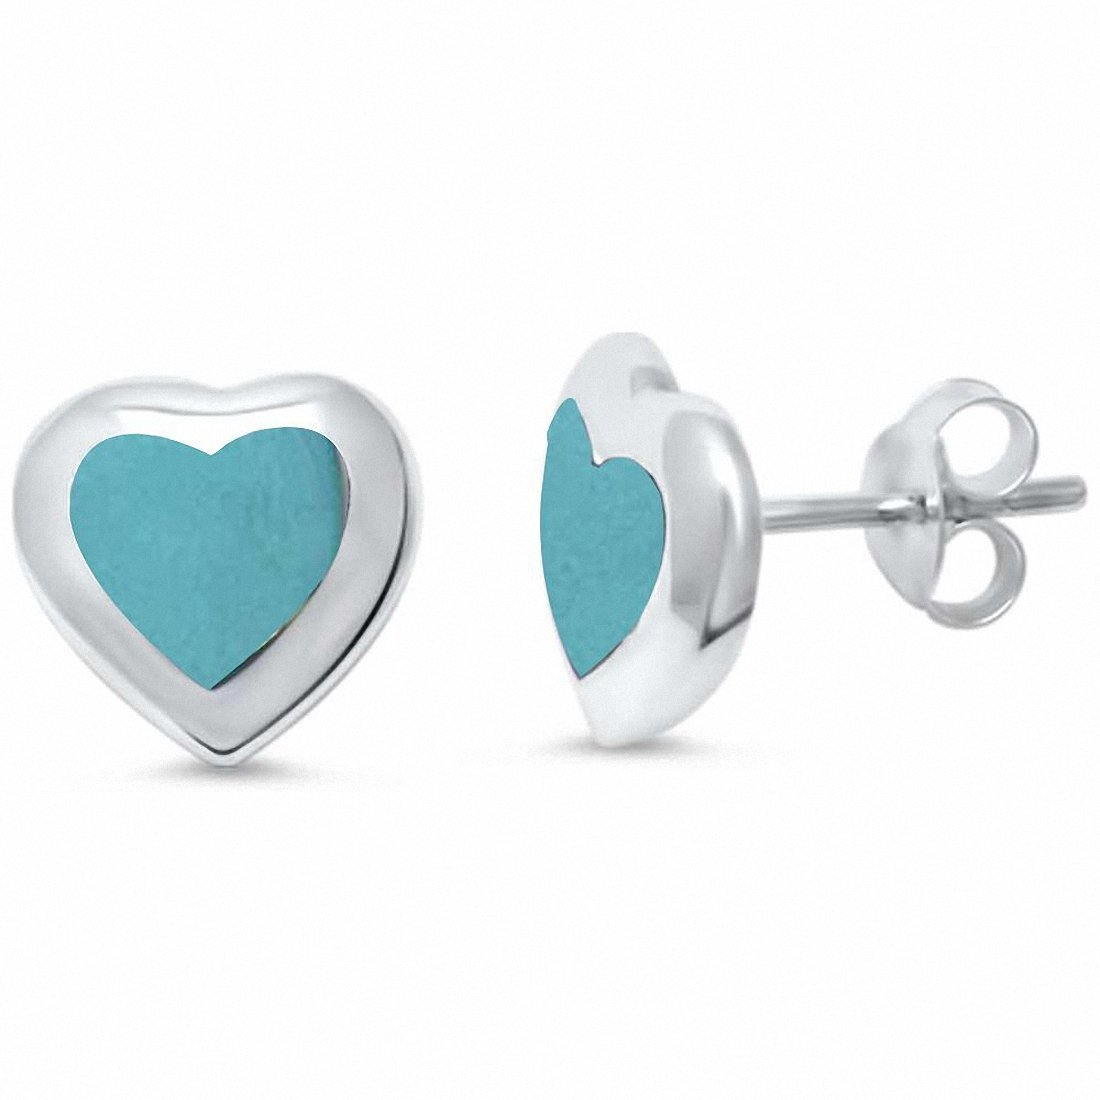 1241a3aae Amazon.com: Heart Stud Earrings Simulated Abalone 925 Sterling Silver:  Jewelry